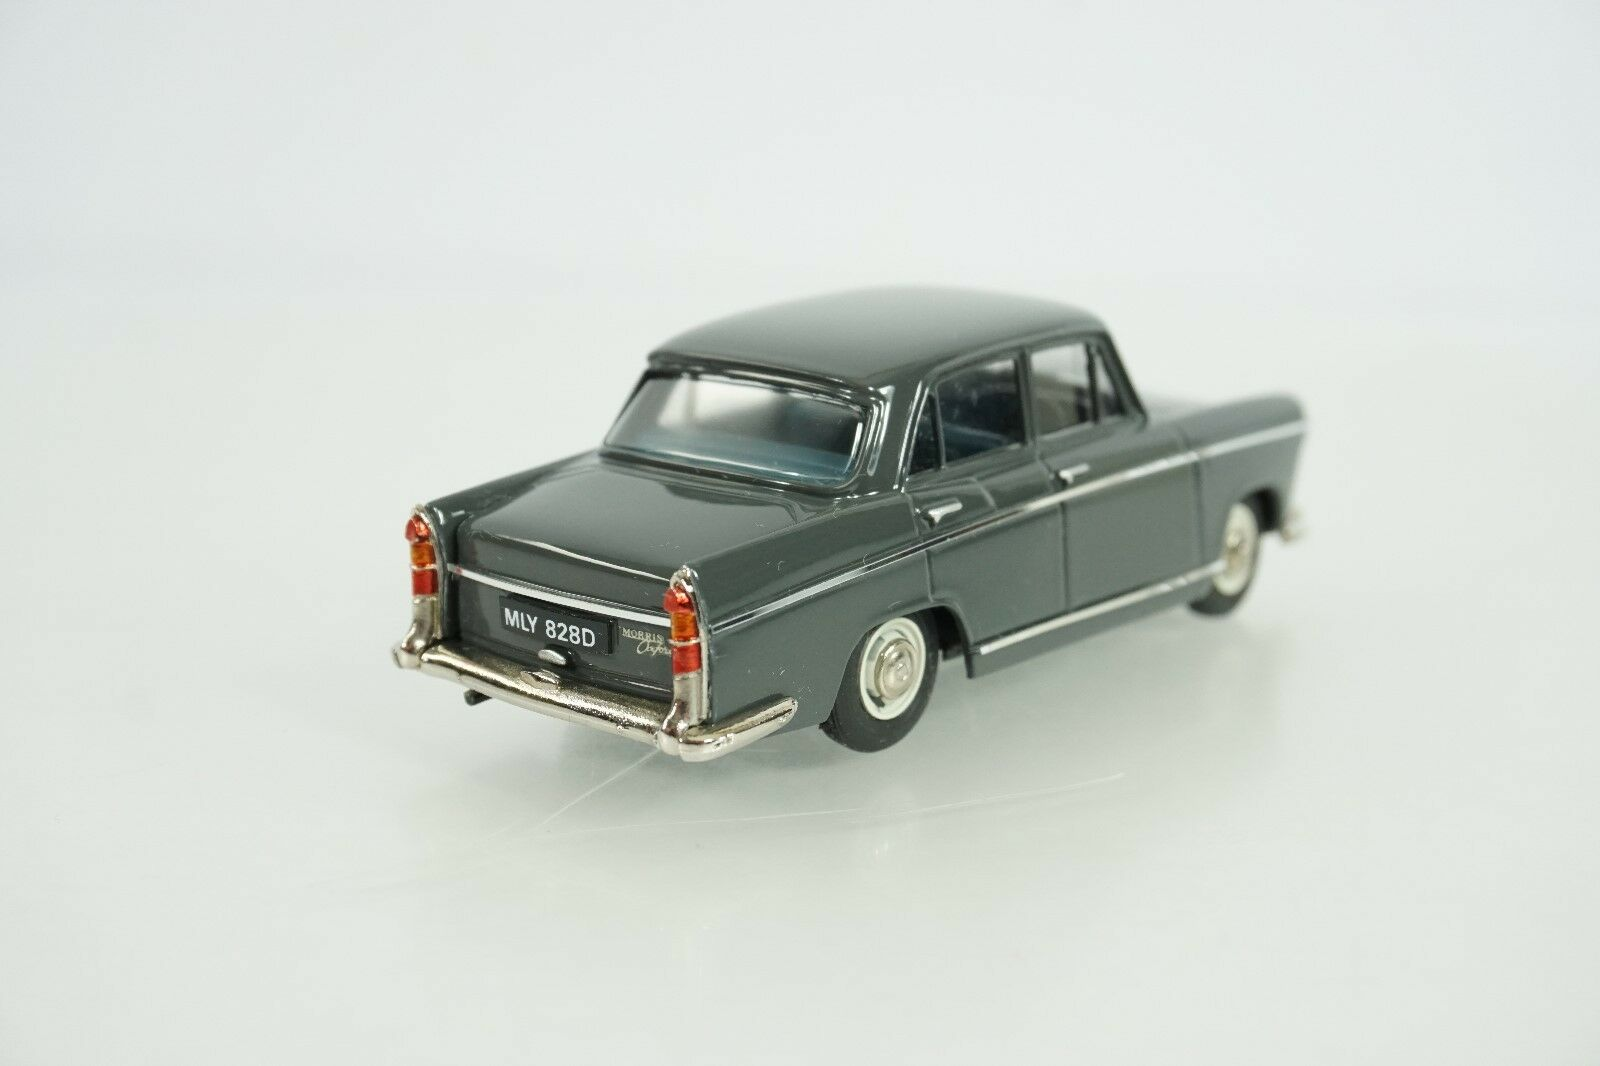 Pathfinder Models Die Cast Cast Cast 1966 Morris Oxford Item No. 13 New VERY NICE b0855f